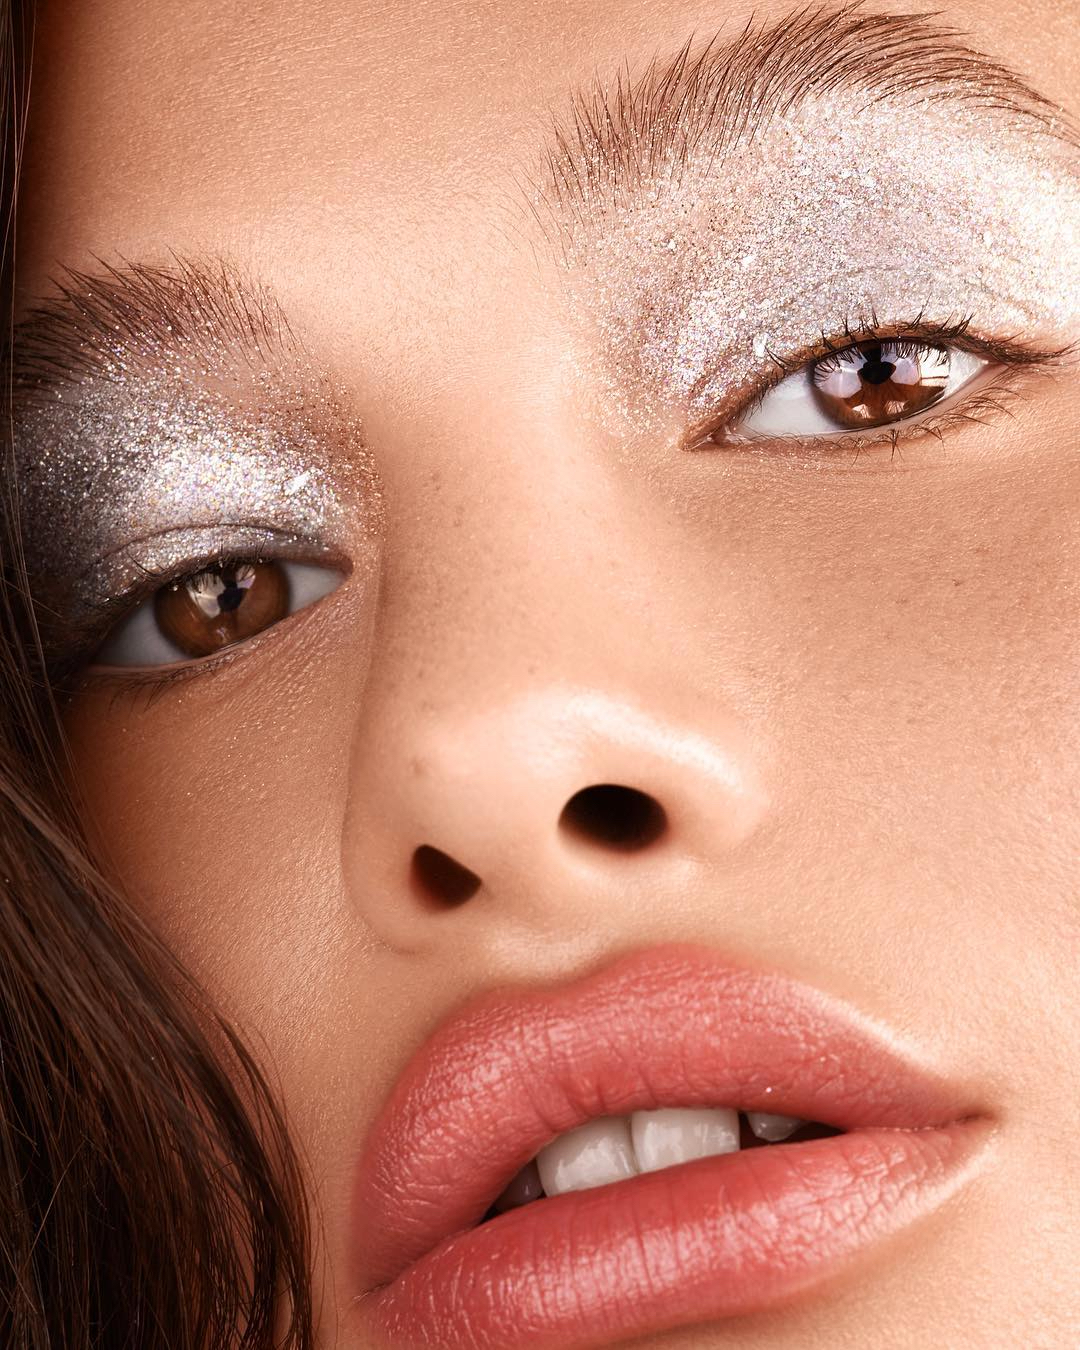 silver sparkly eye shadow beauty shot